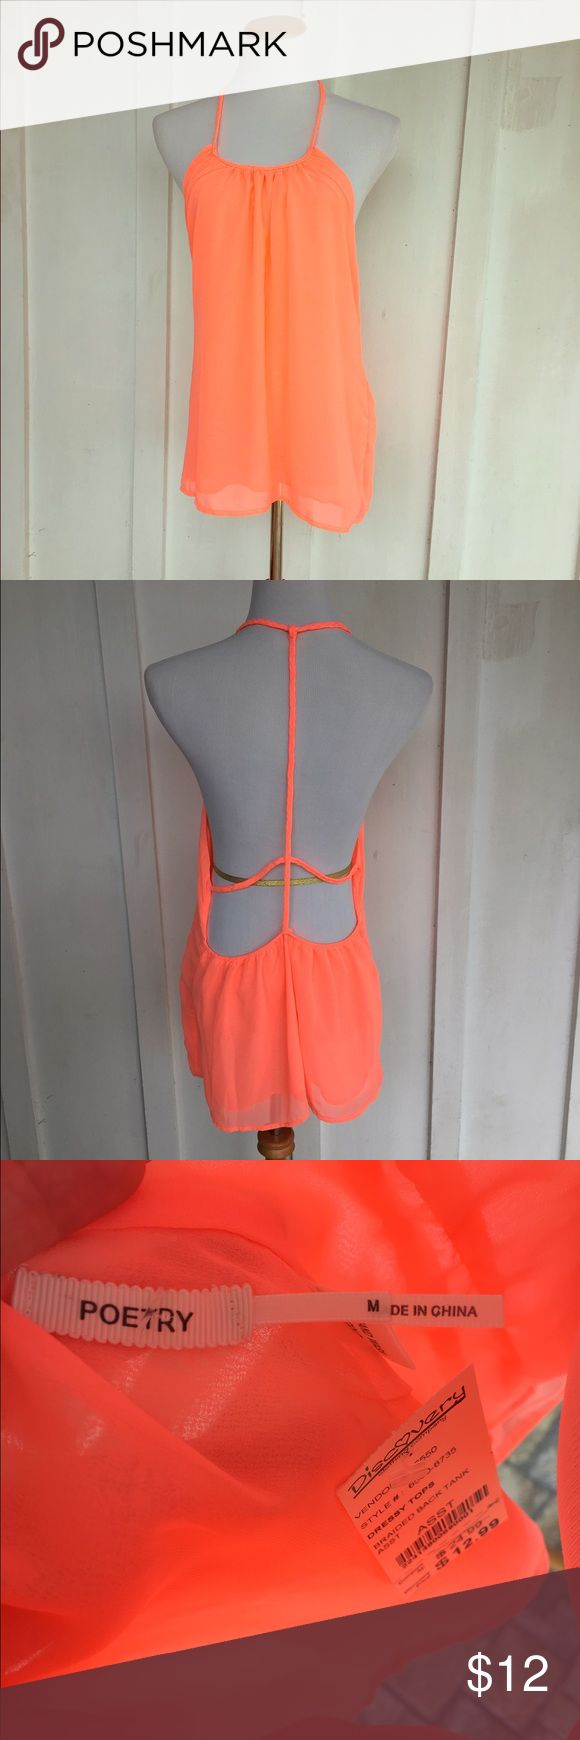 Neon orange / coral strappy blouse NWT neon orange open back tank top. The back has a braided detail. The cut is very fluttery and a bit oversized. It is double layered but still a bit sheer so I would recommend a bralette or it could be worn as a swim coverup. Size medium.   ✮ Condition:  NWT┊New with tags   ✮ Closet Rules:  ⇢ NO SWAPS  ⇢ NO HOLDS  ⇢ PLEASE ASK FOR MEASUREMENTS ⇢ I WILL MODEL ANYTHING THAT FITS IF REQUESTED  ⇢ I USUALLY SHIP SAME OR NEXT BUSINESS DAY  #tanktop #openback…